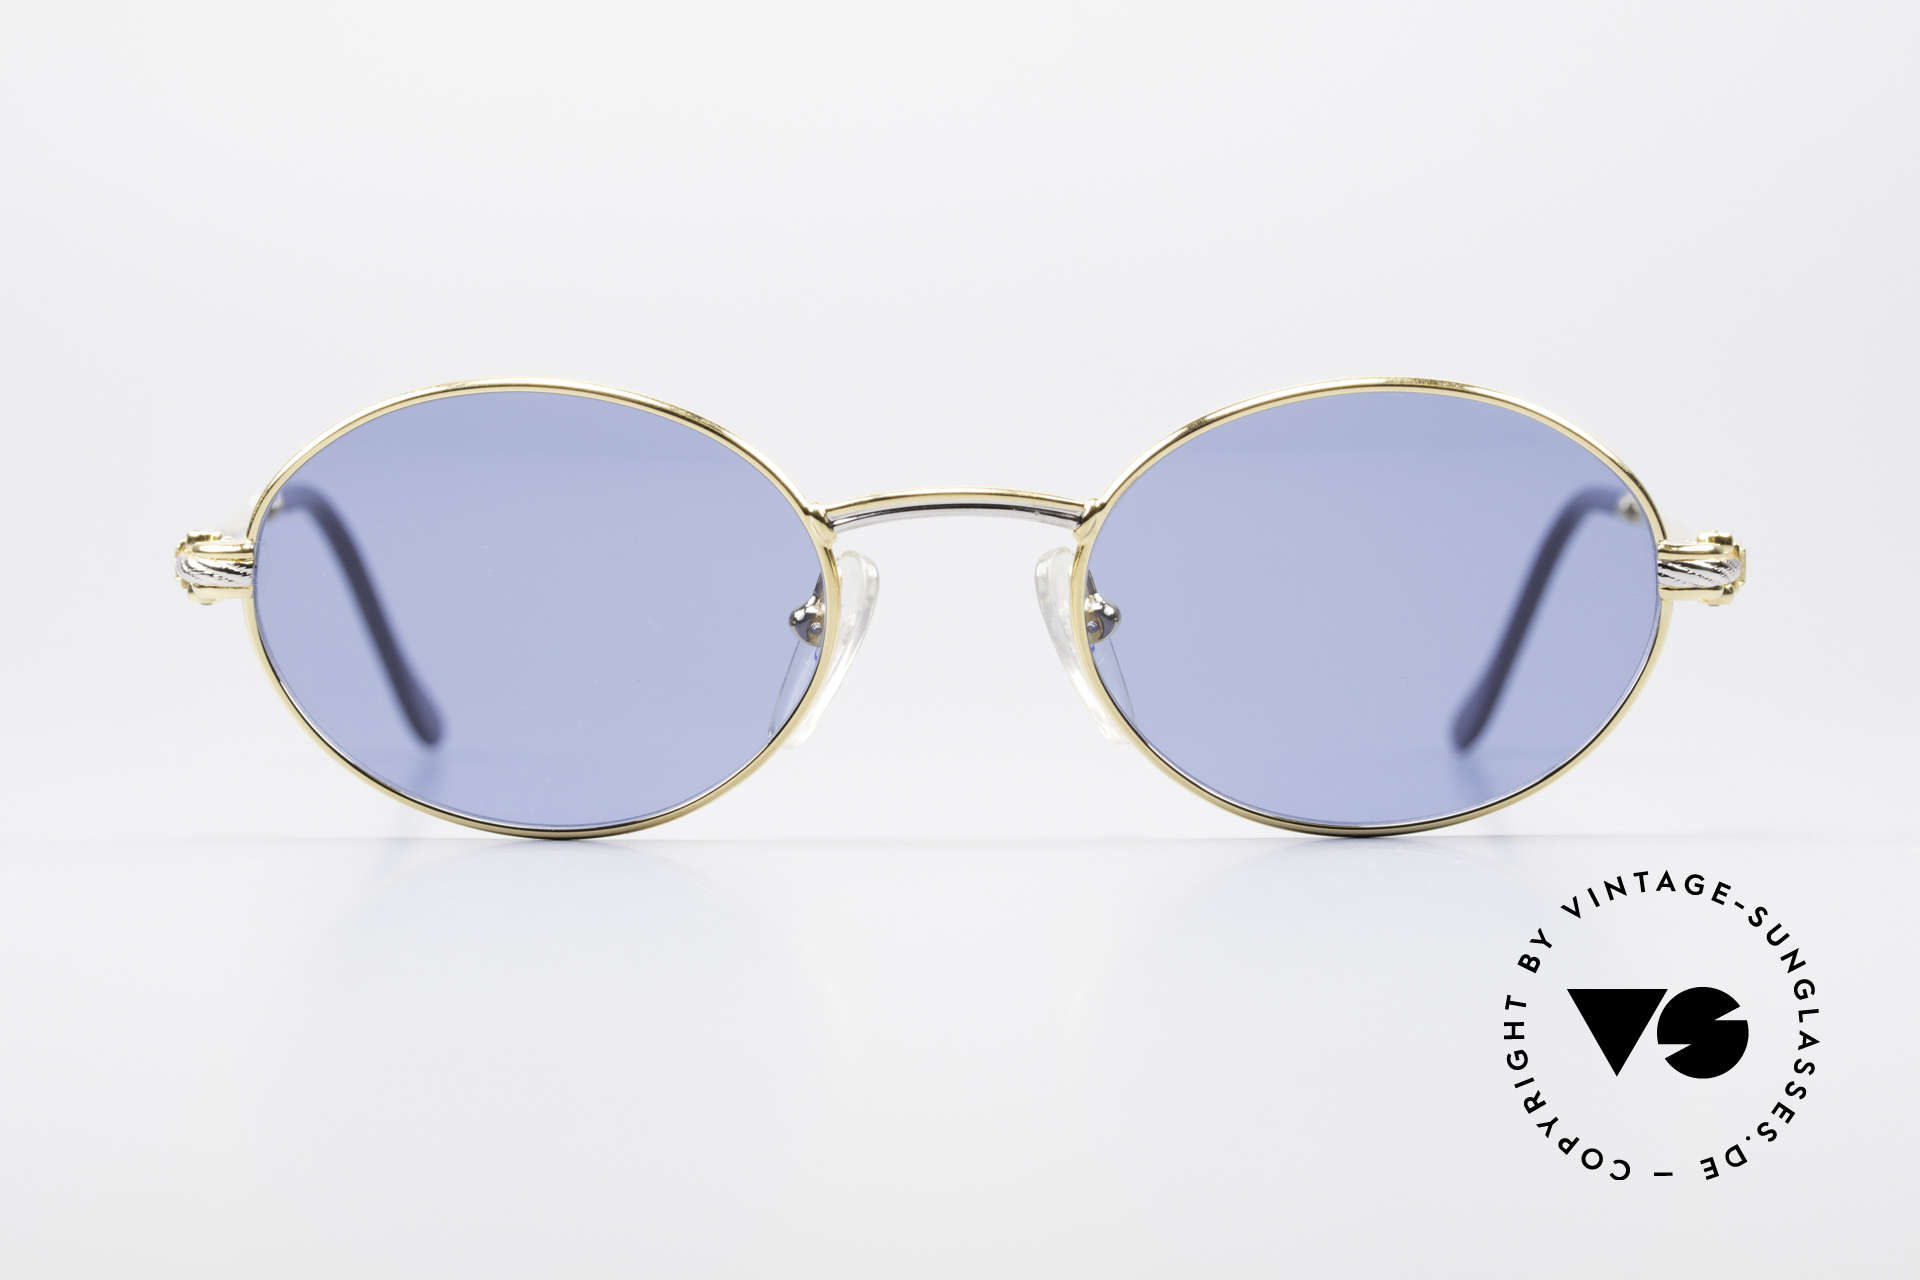 Fred Ketch Oval Luxury Sailing Sunglasses, marine design (distinctive Fred) in high-end quality!, Made for Men and Women